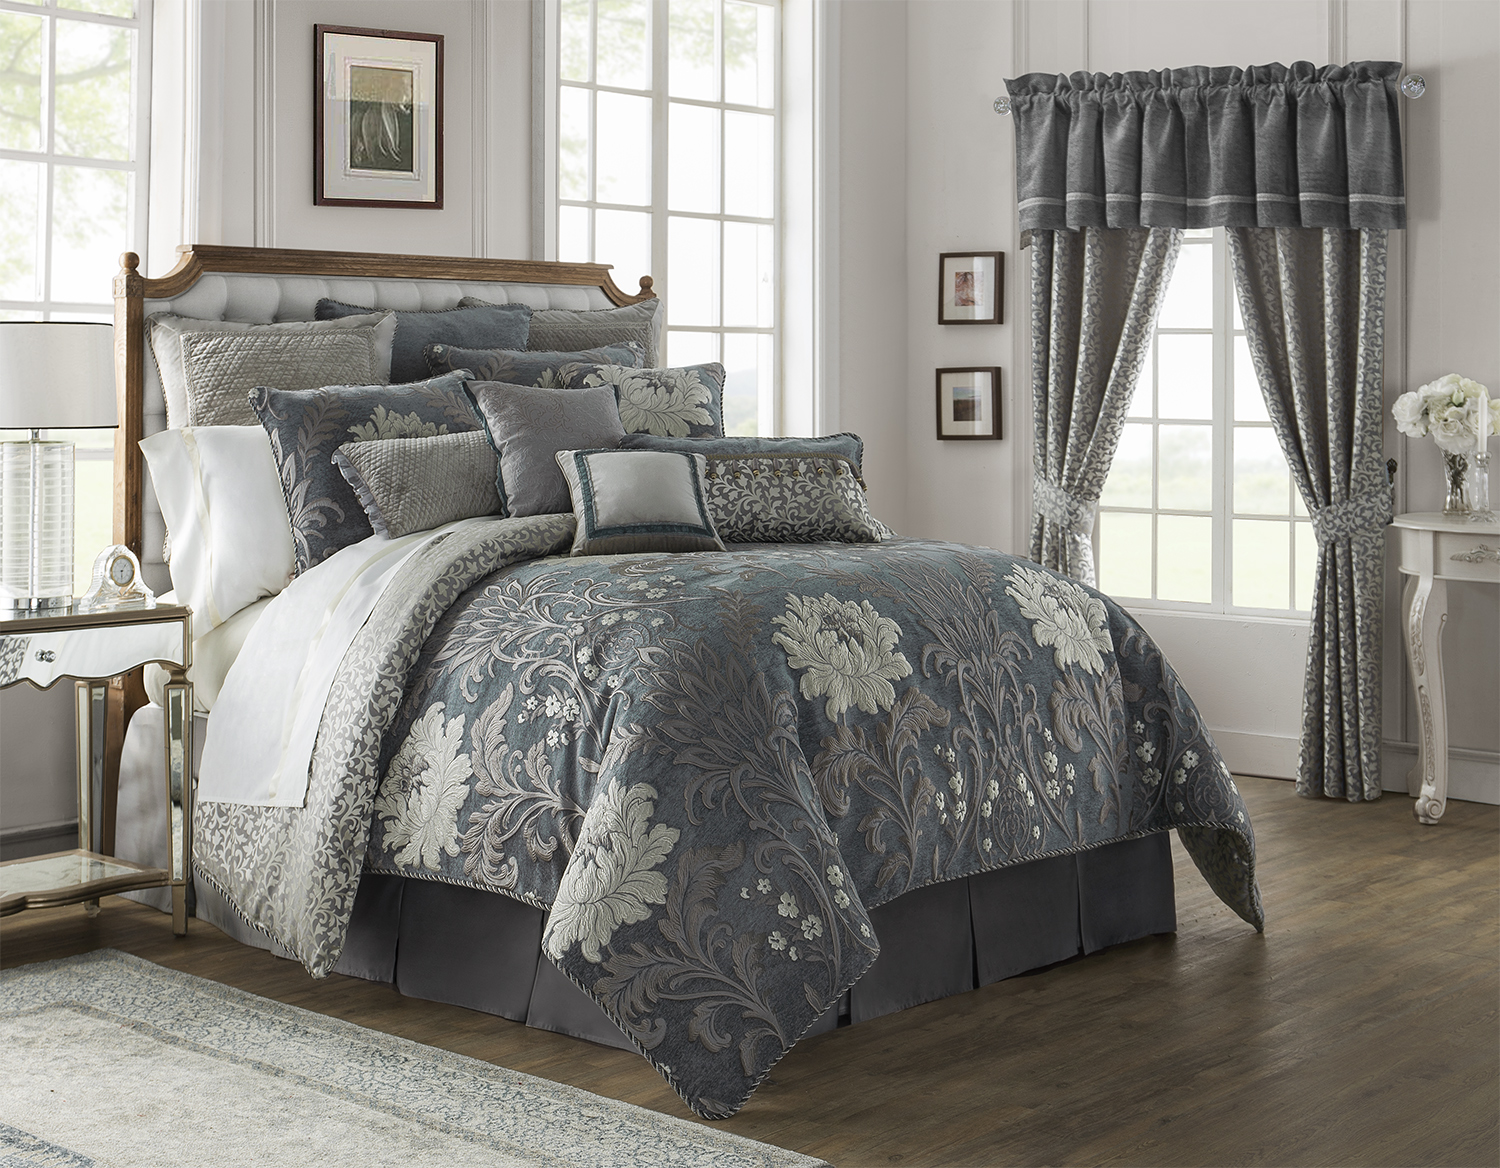 Queen Daybed Ansonia Pewter By Waterford Luxury Bedding